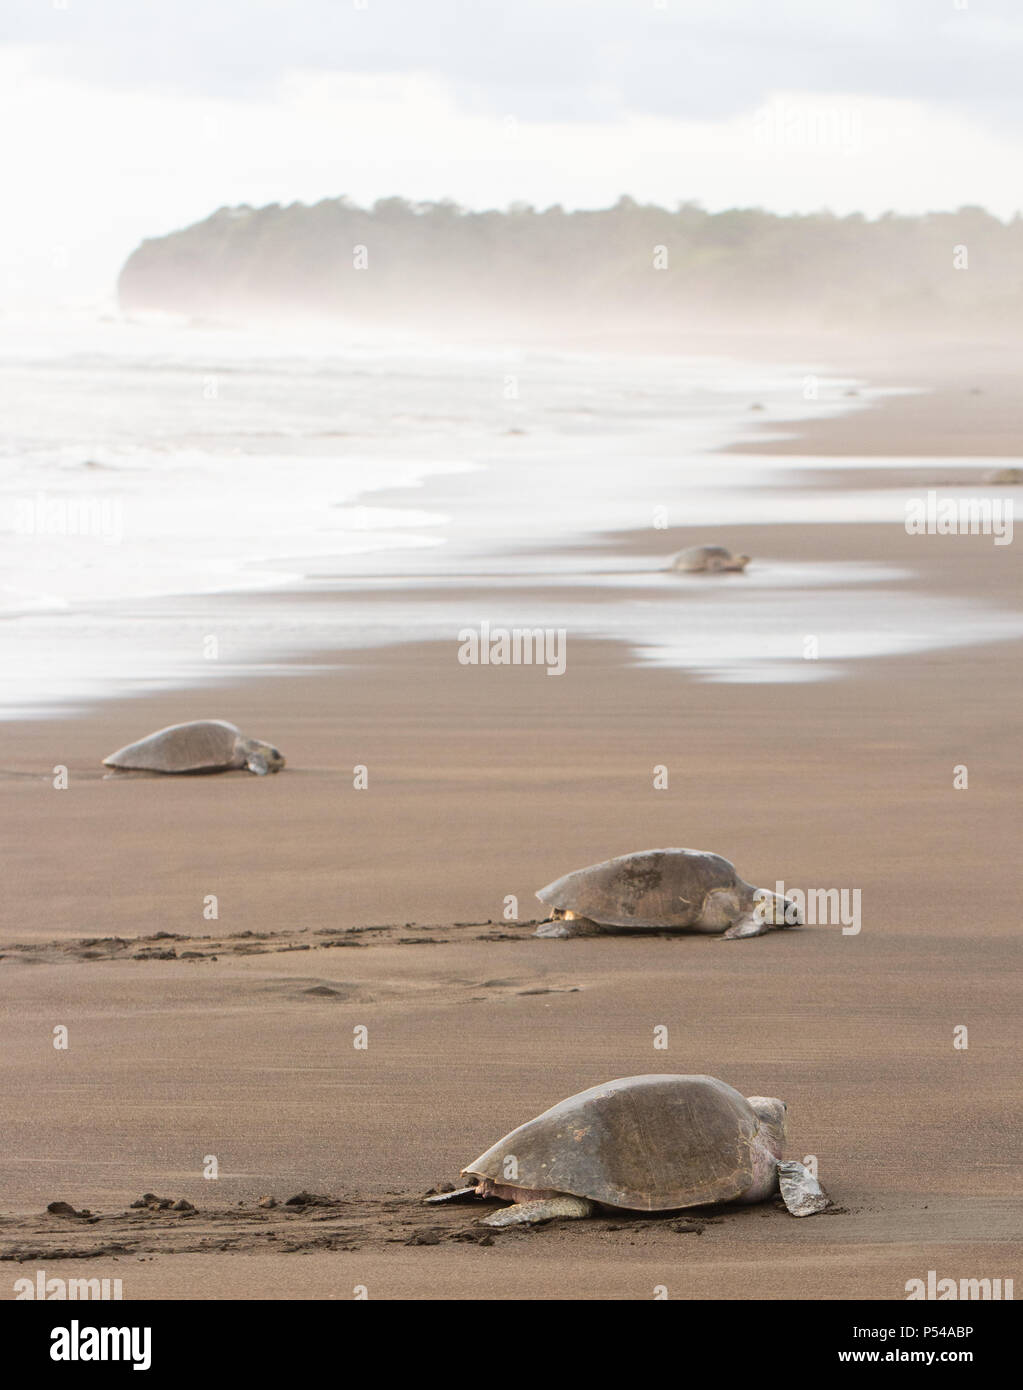 A group of olive ridley sea turtles (Lepidochelys olivacea) leave the ocean to lay eggs in a volcanic sand beach in Costa Rica - Stock Image